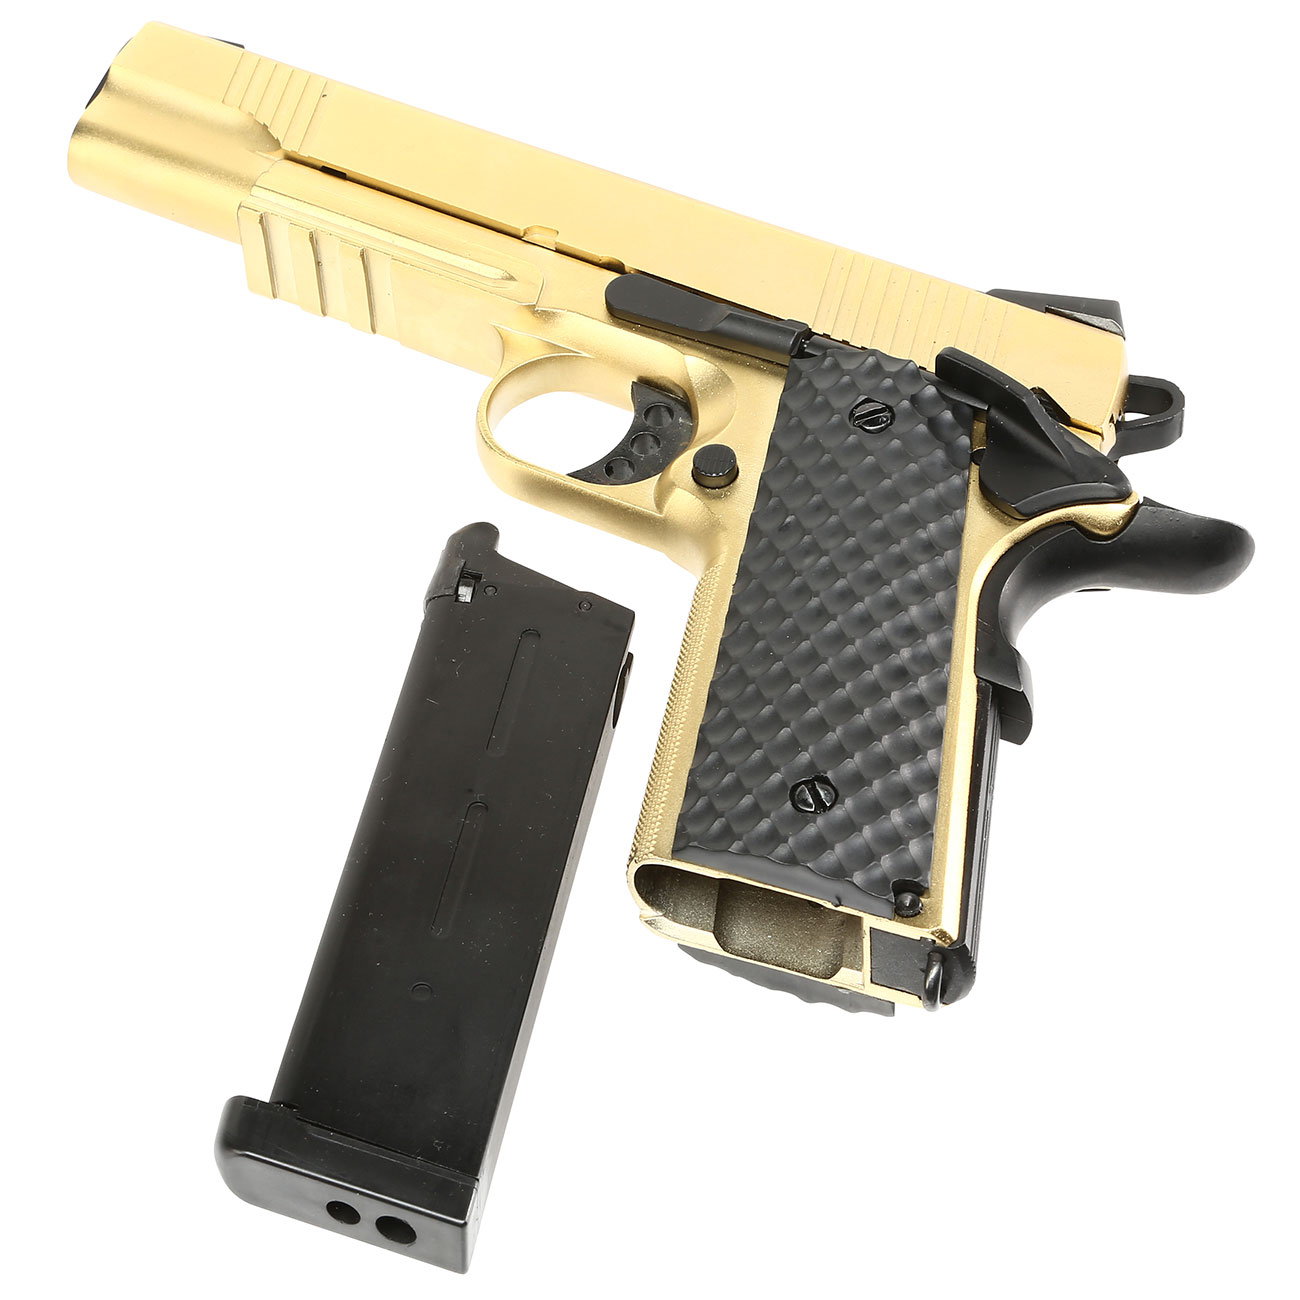 Nuprol Raven M1911 MEU Railed Vollmetall GBB 6mm BB gold 6